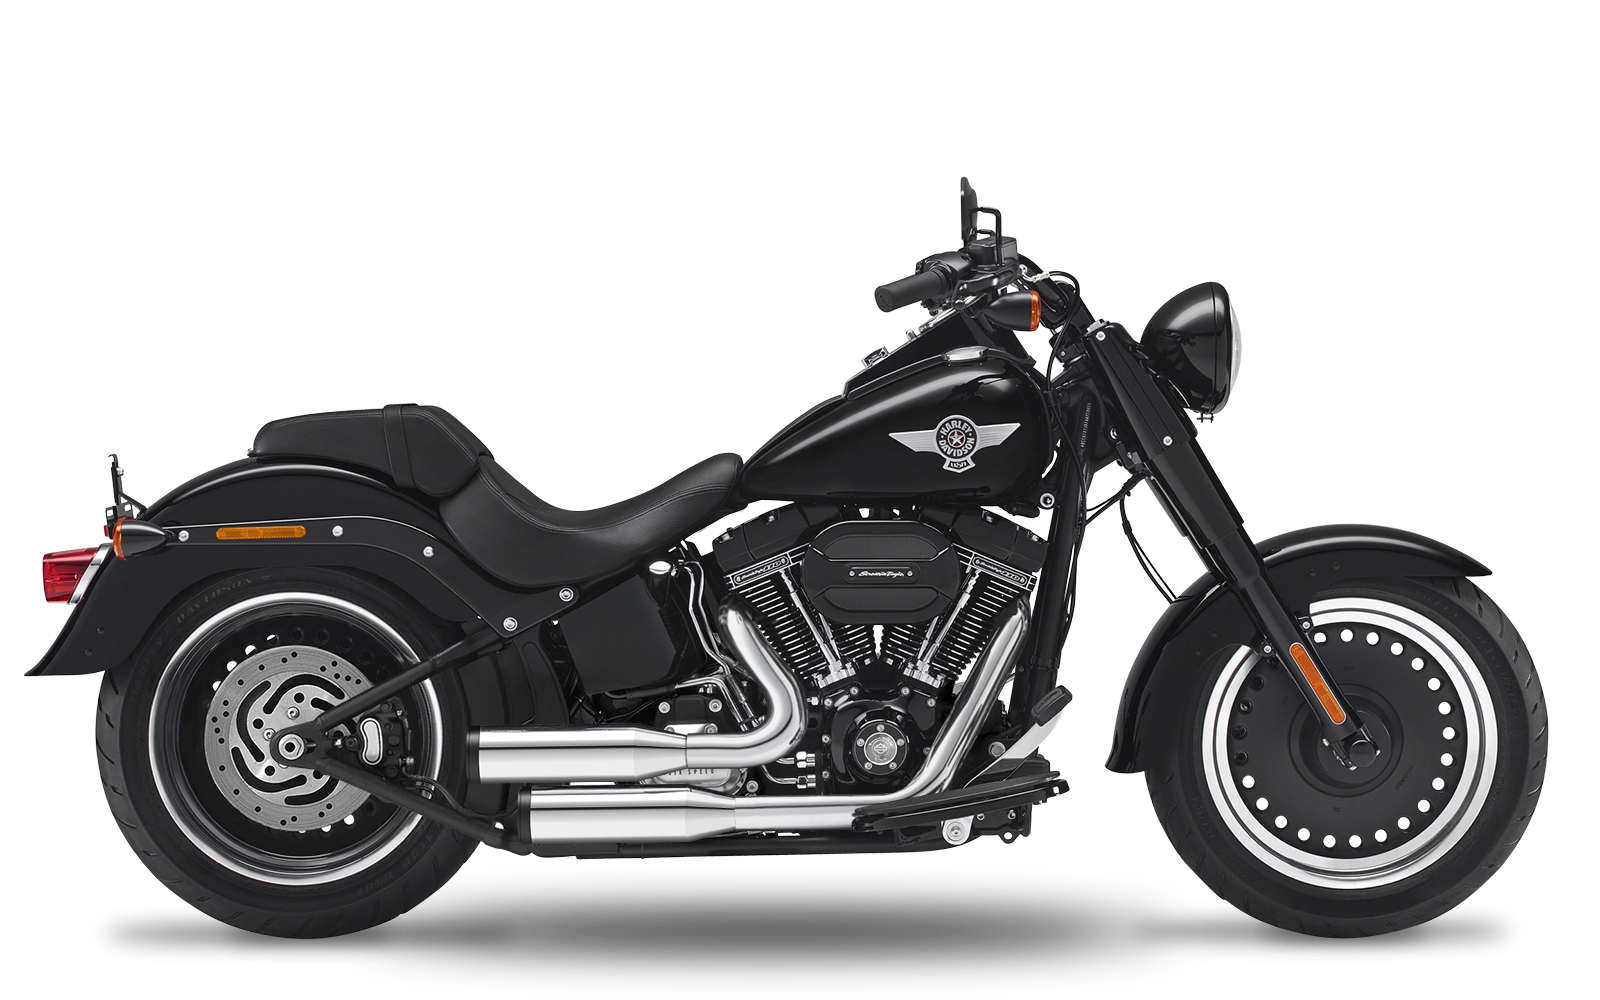 Softail - Fat Boy S - TC110 - 2016-2017 - Complete systems adjustable